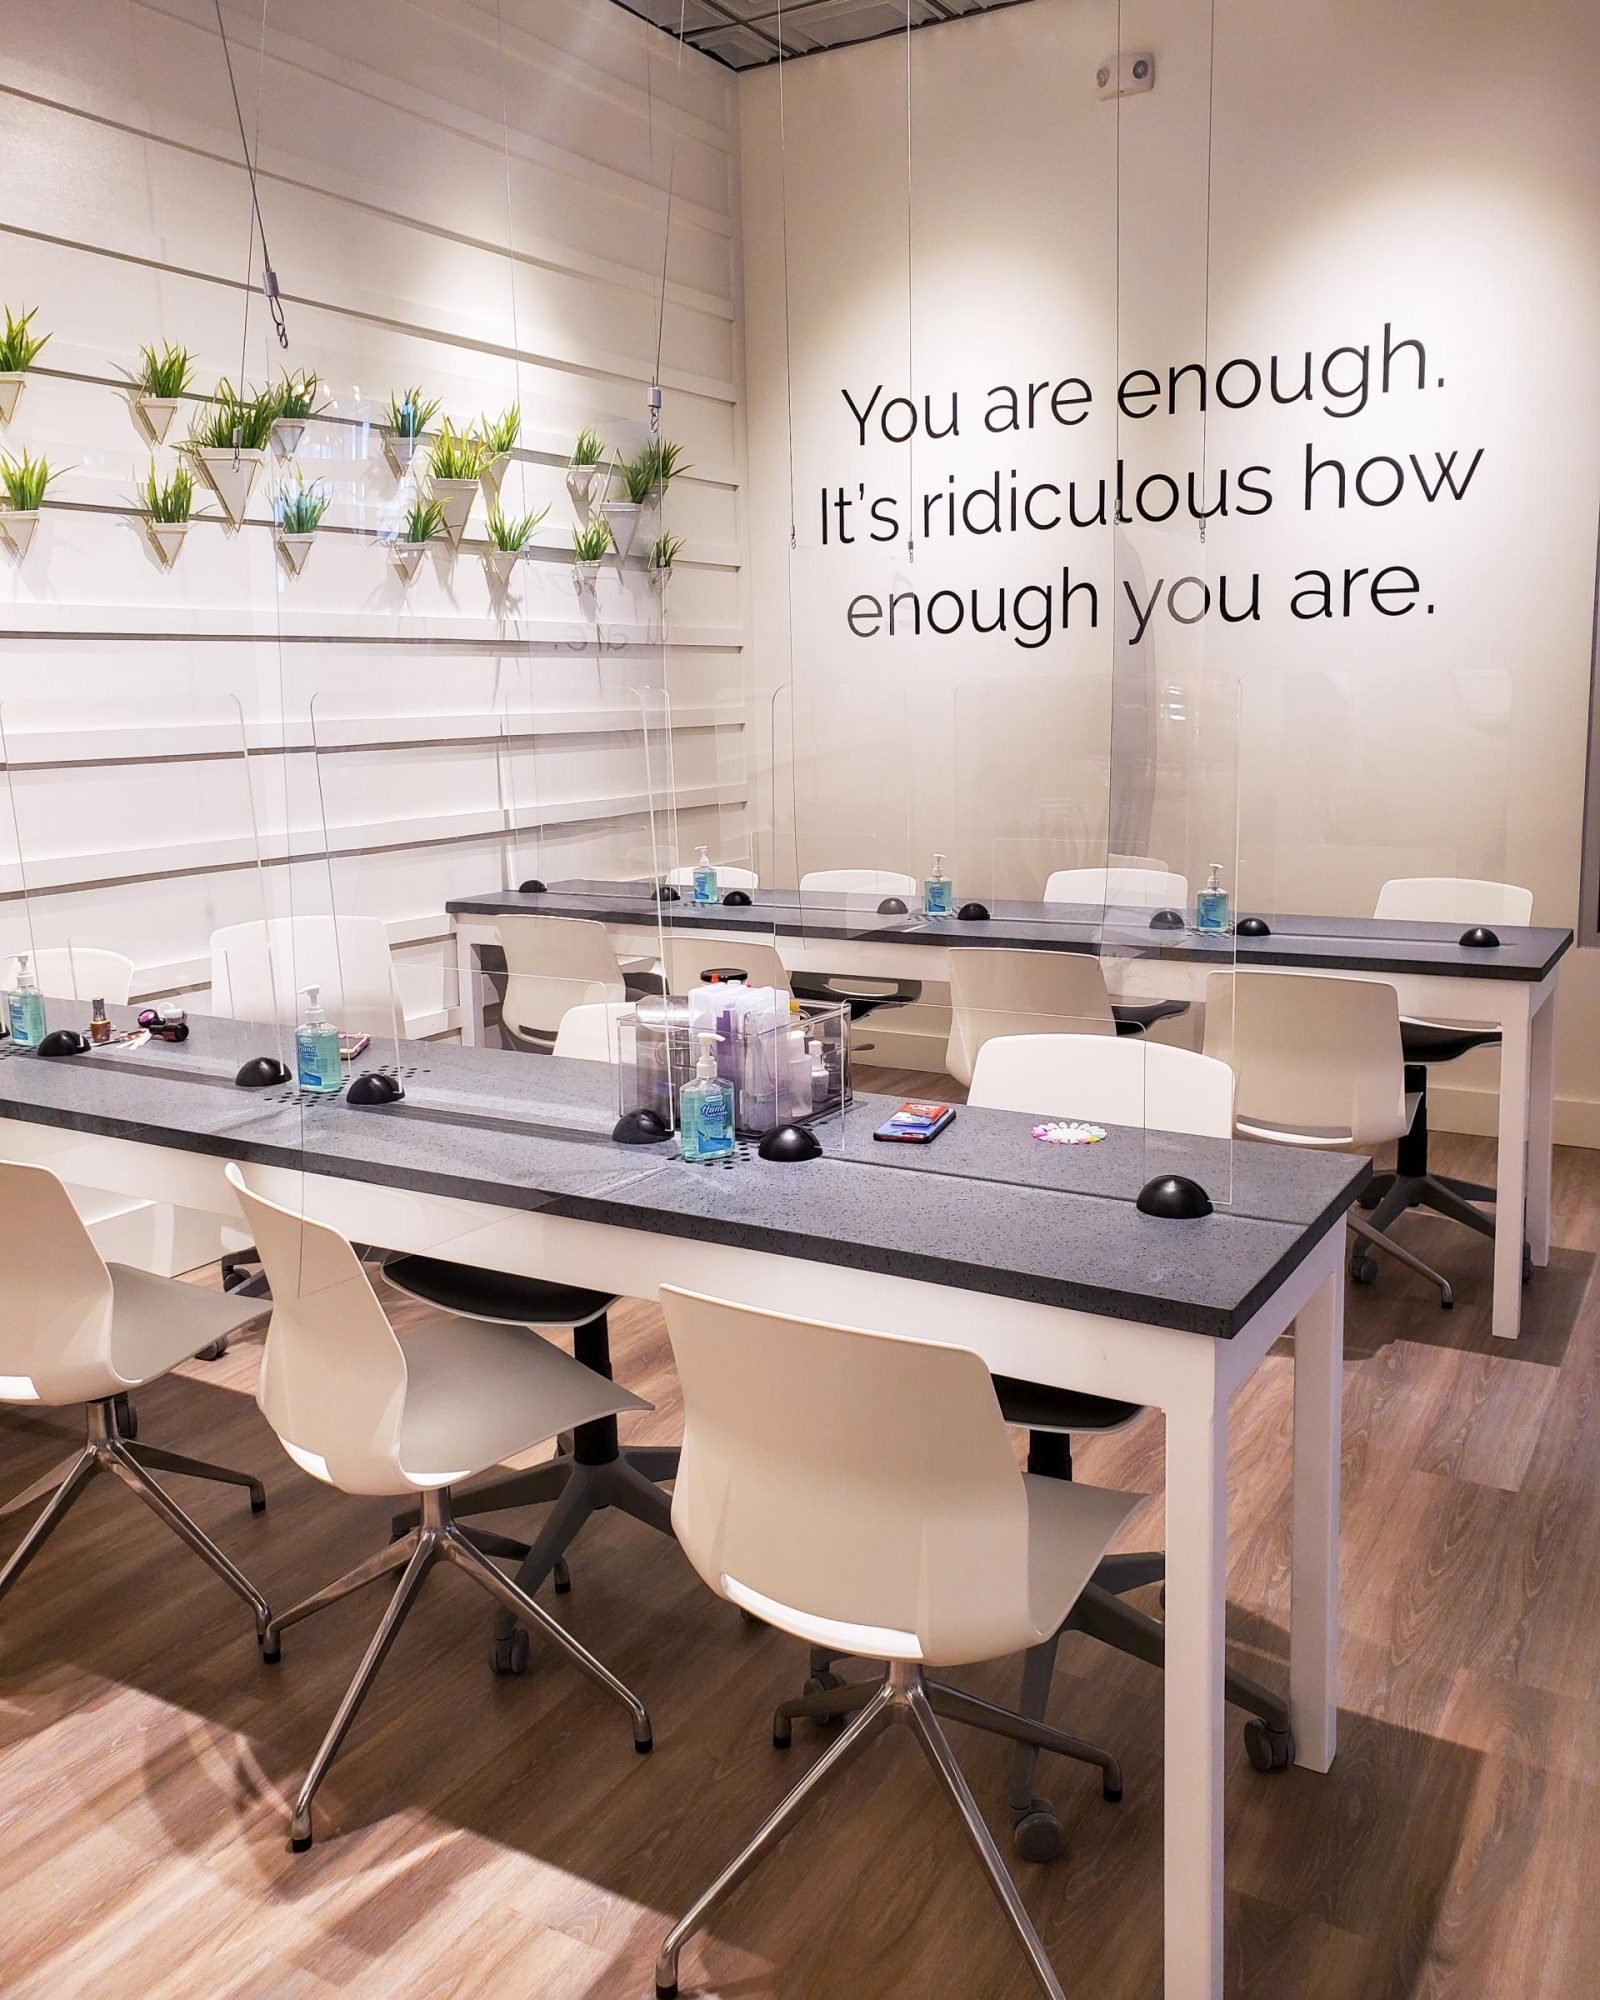 What You Need to Know about The W Nail Bar Located in Bettendorf's Hy-Vee